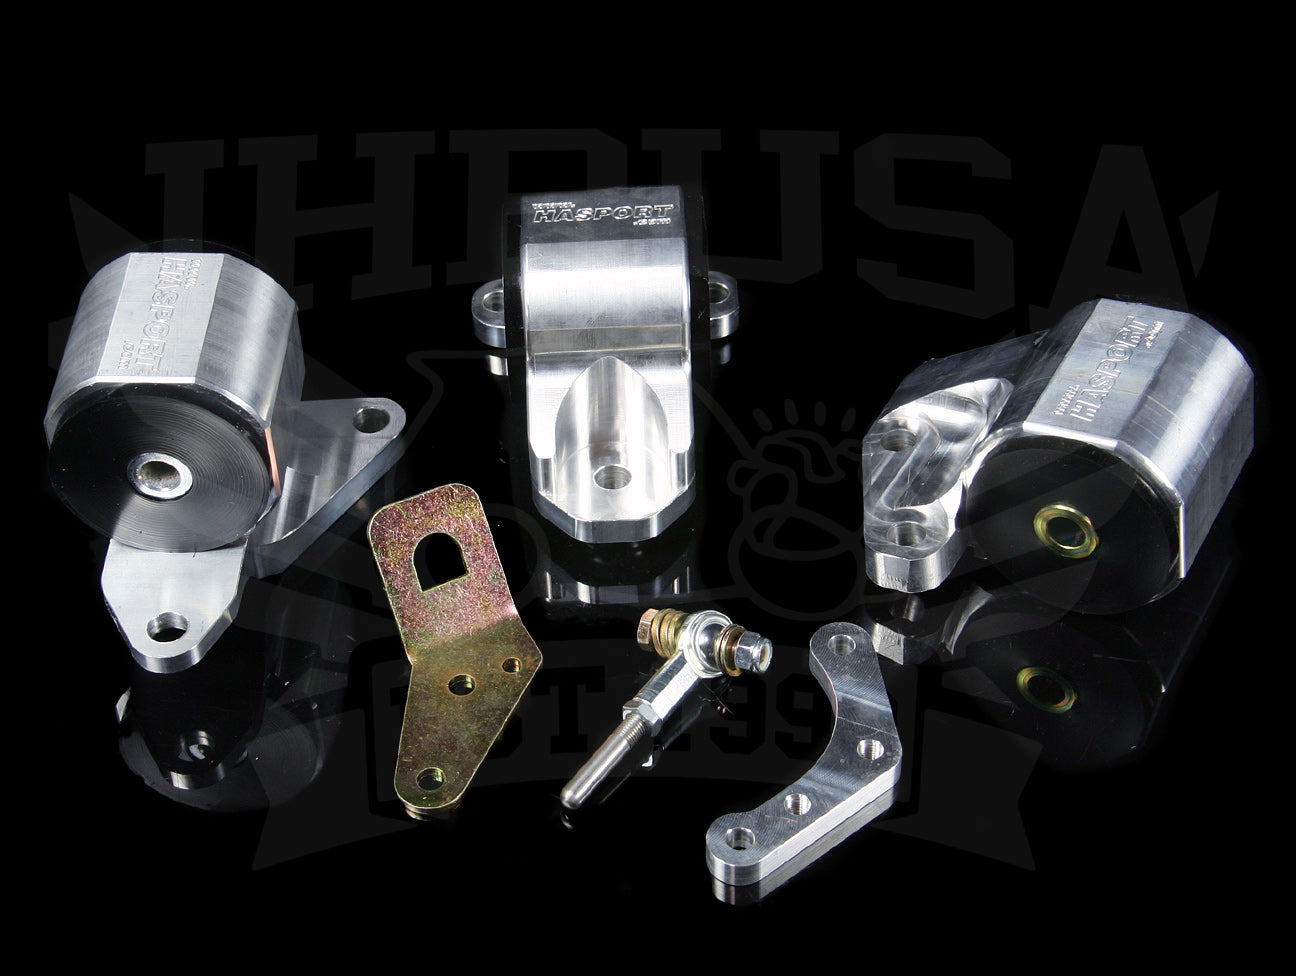 Hasport Billet B-series Engine Mount Kit w/ Cable Trans - 92-95 Civic / 94-01 Integra